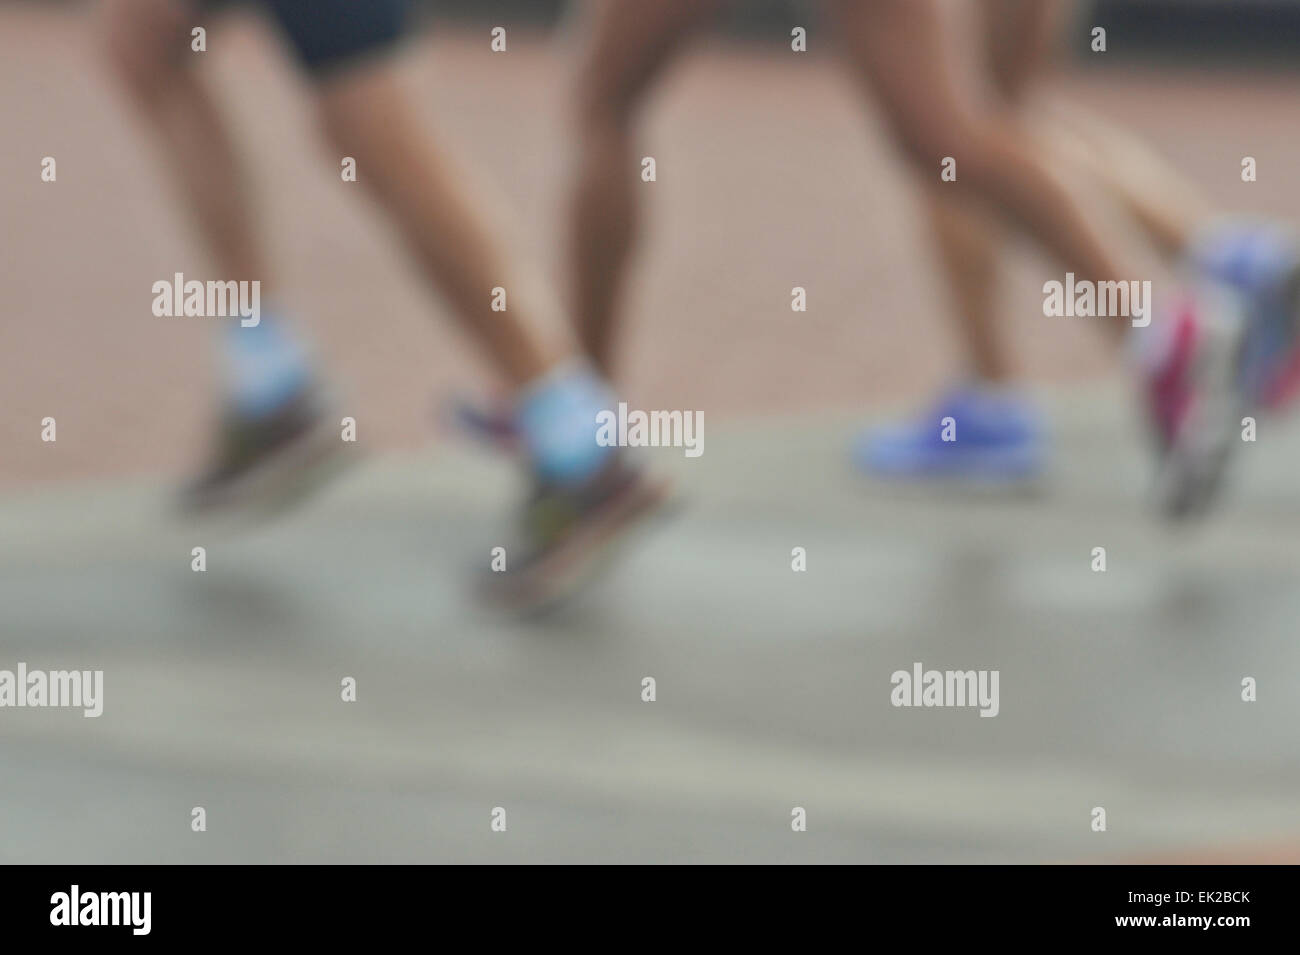 Blur, legs of three women runners running in group, people, fitness, activity, lifestyle - Stock Image